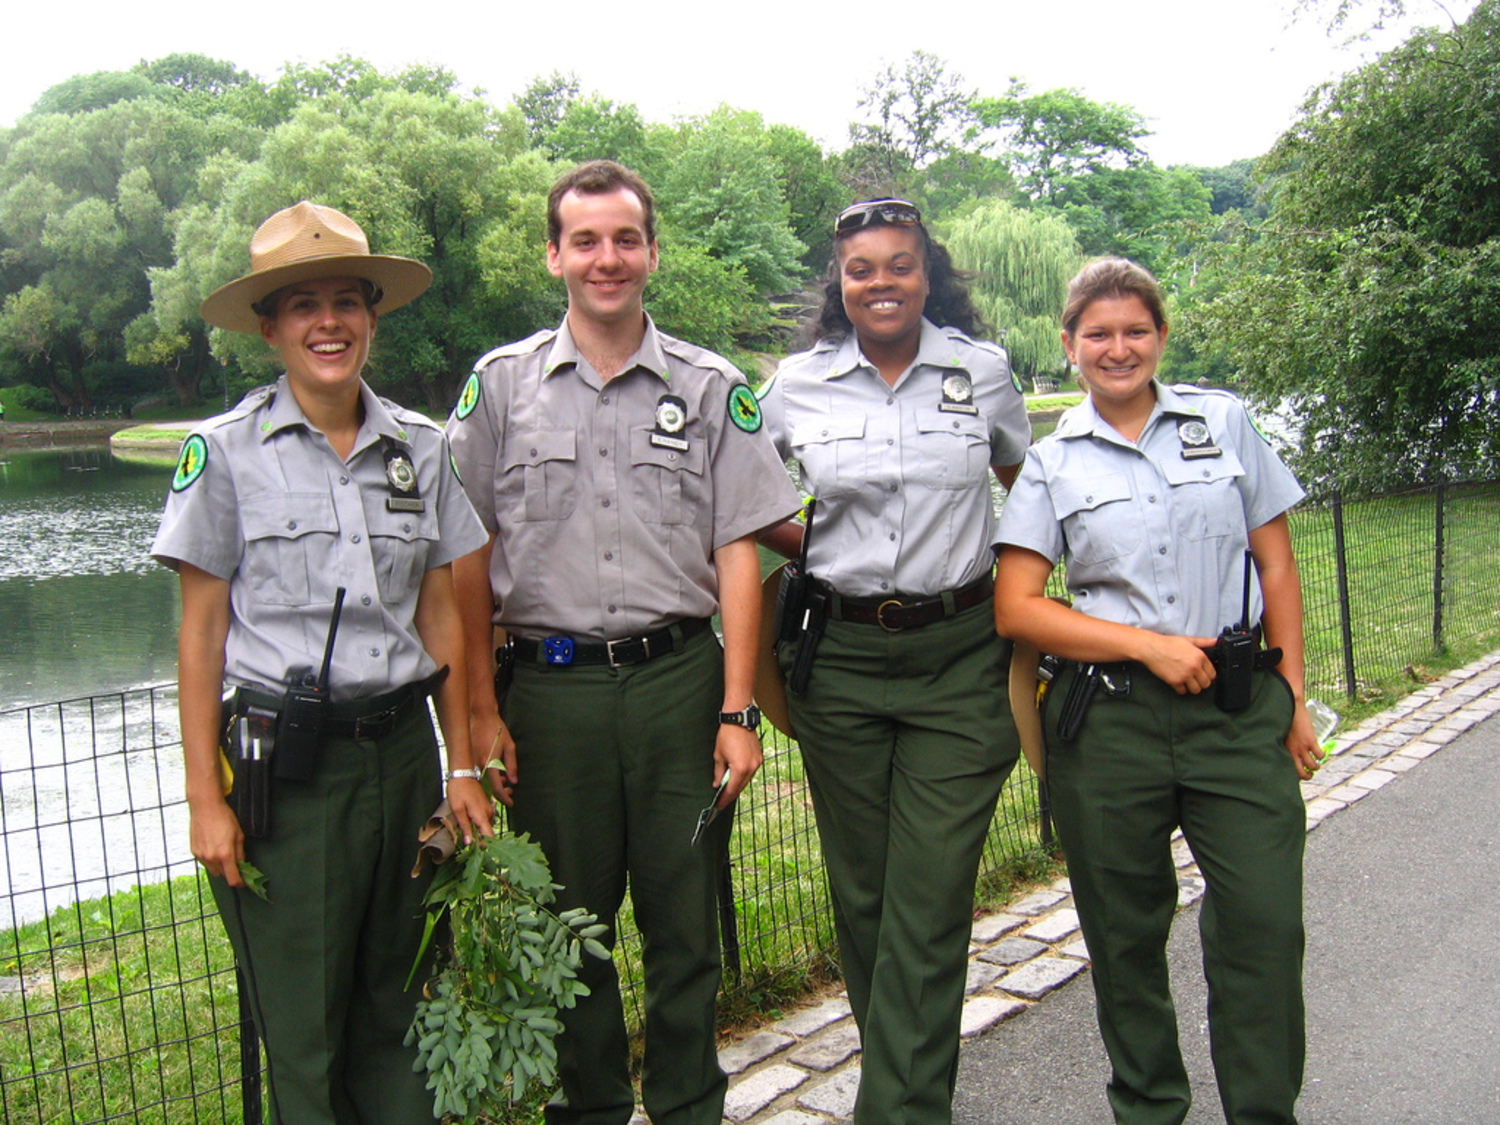 NYC urban park ranger fellows | Central Park and Inwood Hill represent, represent